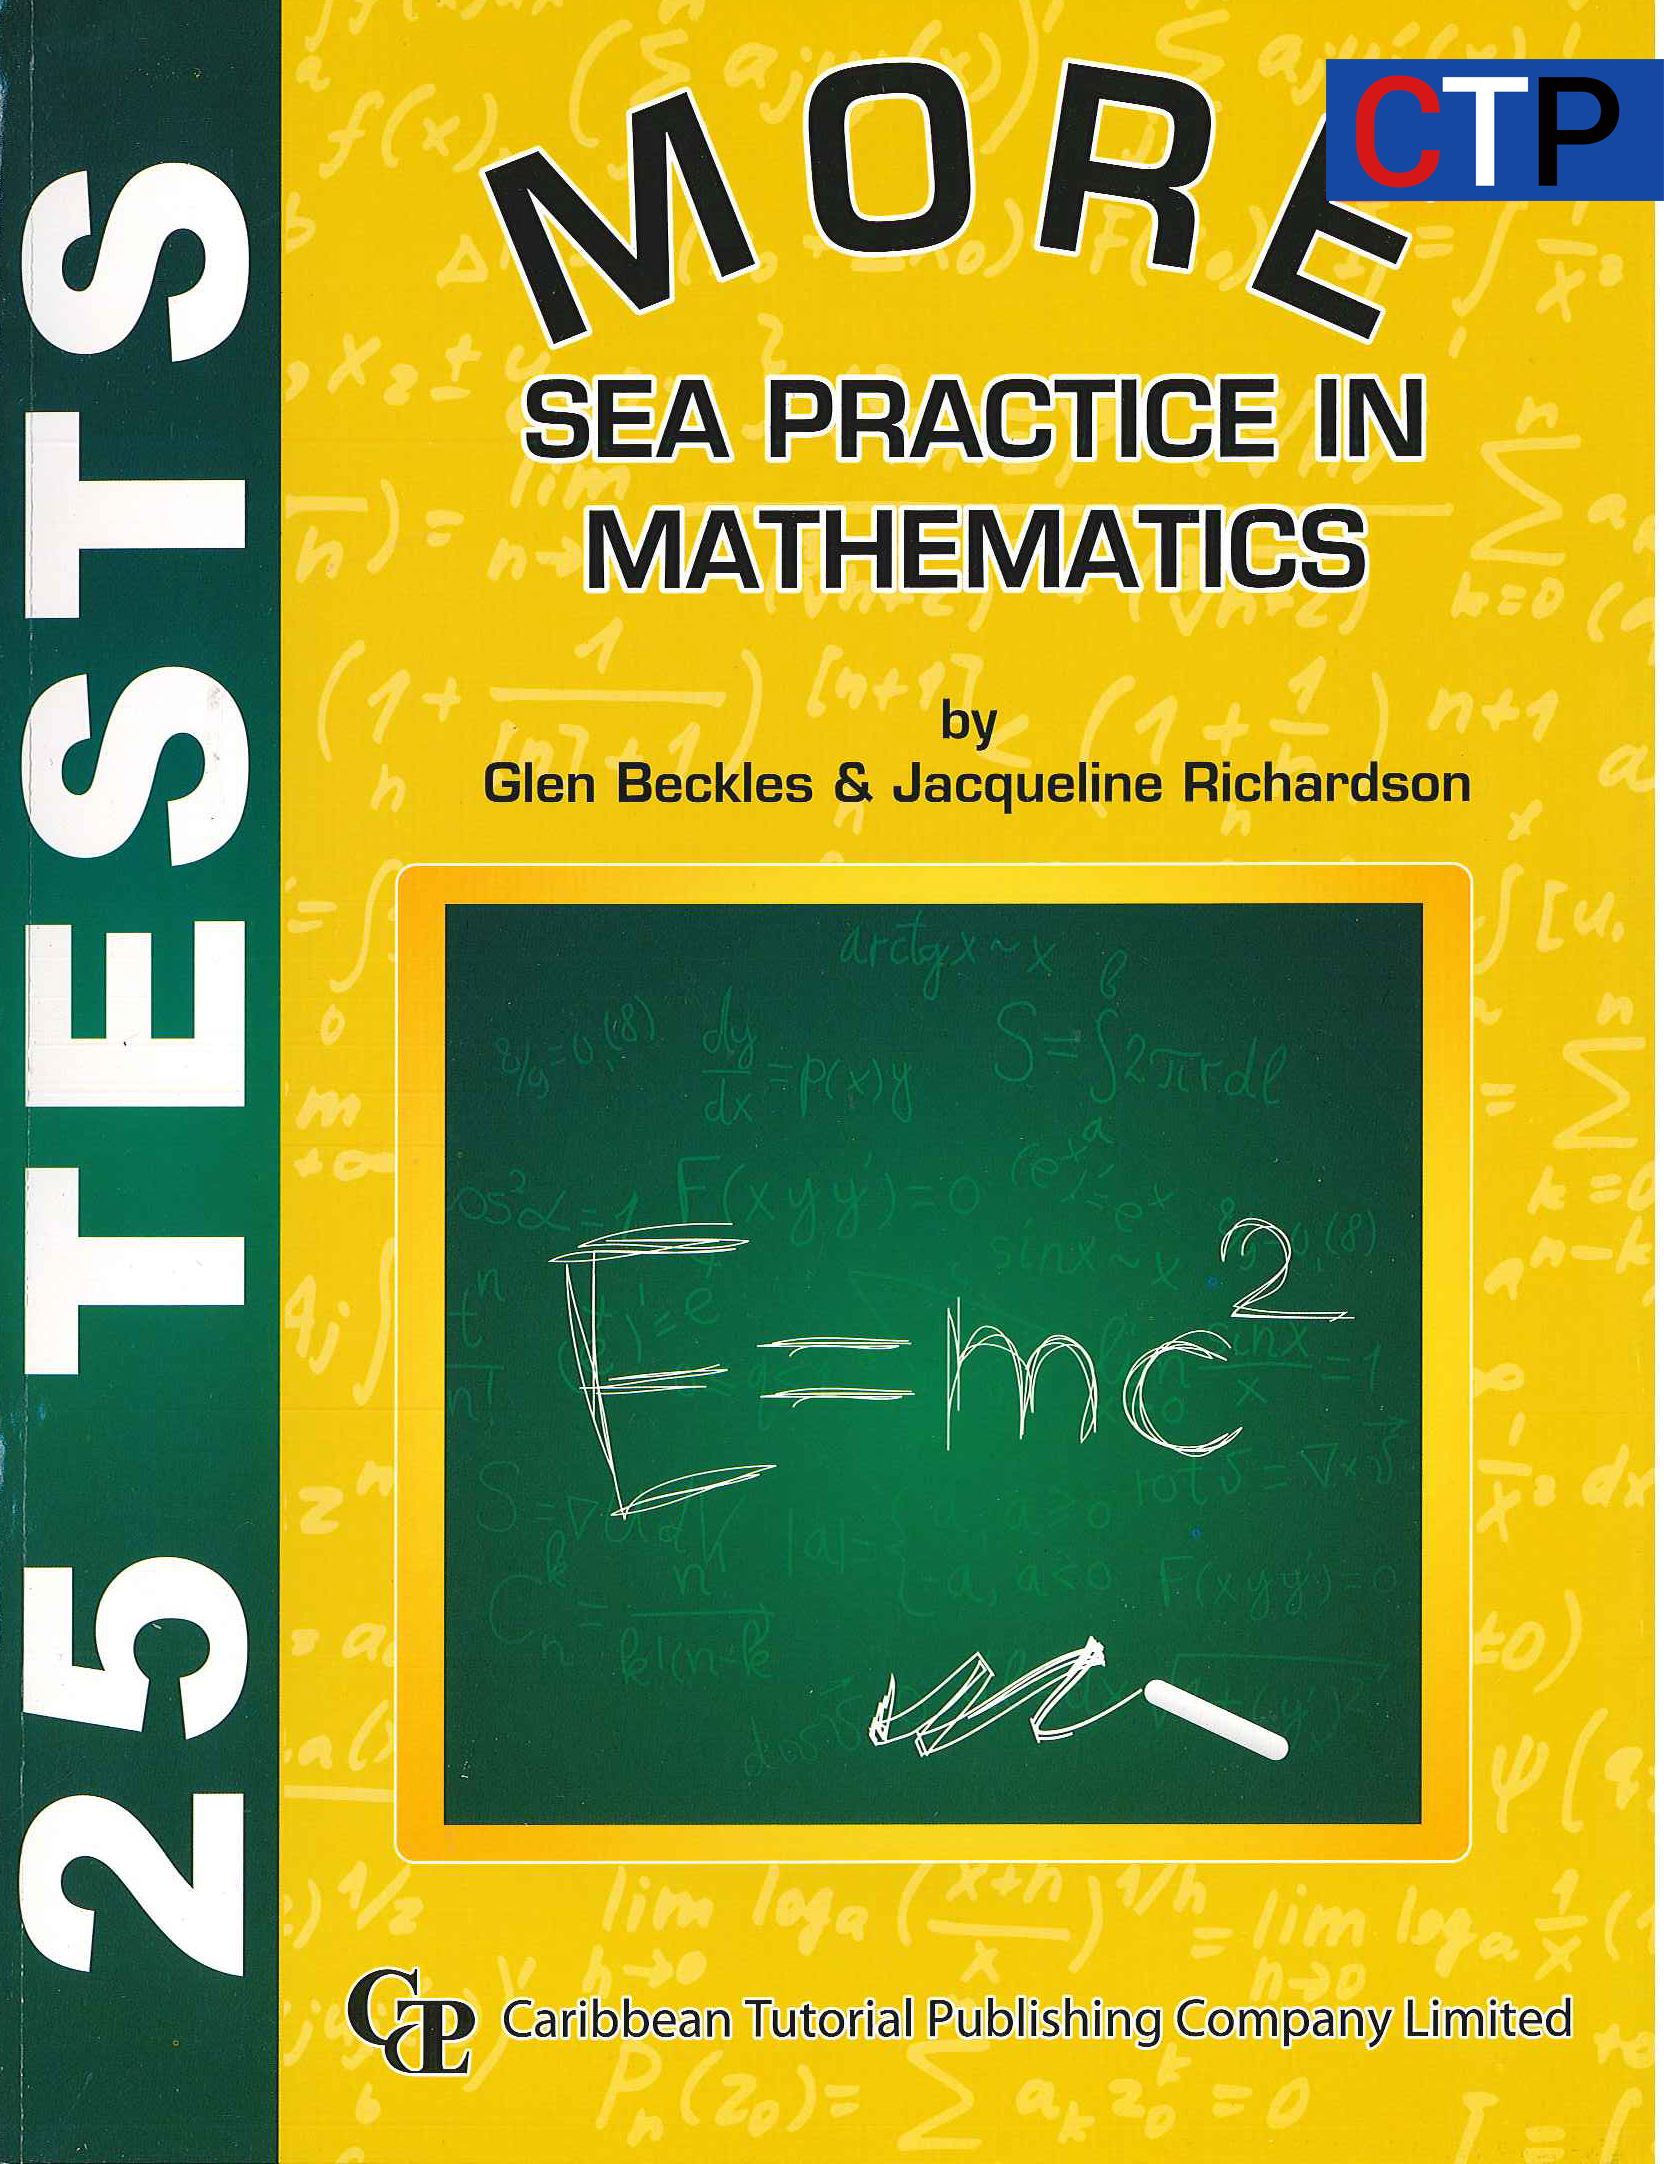 More Sea Practice In Mathematics